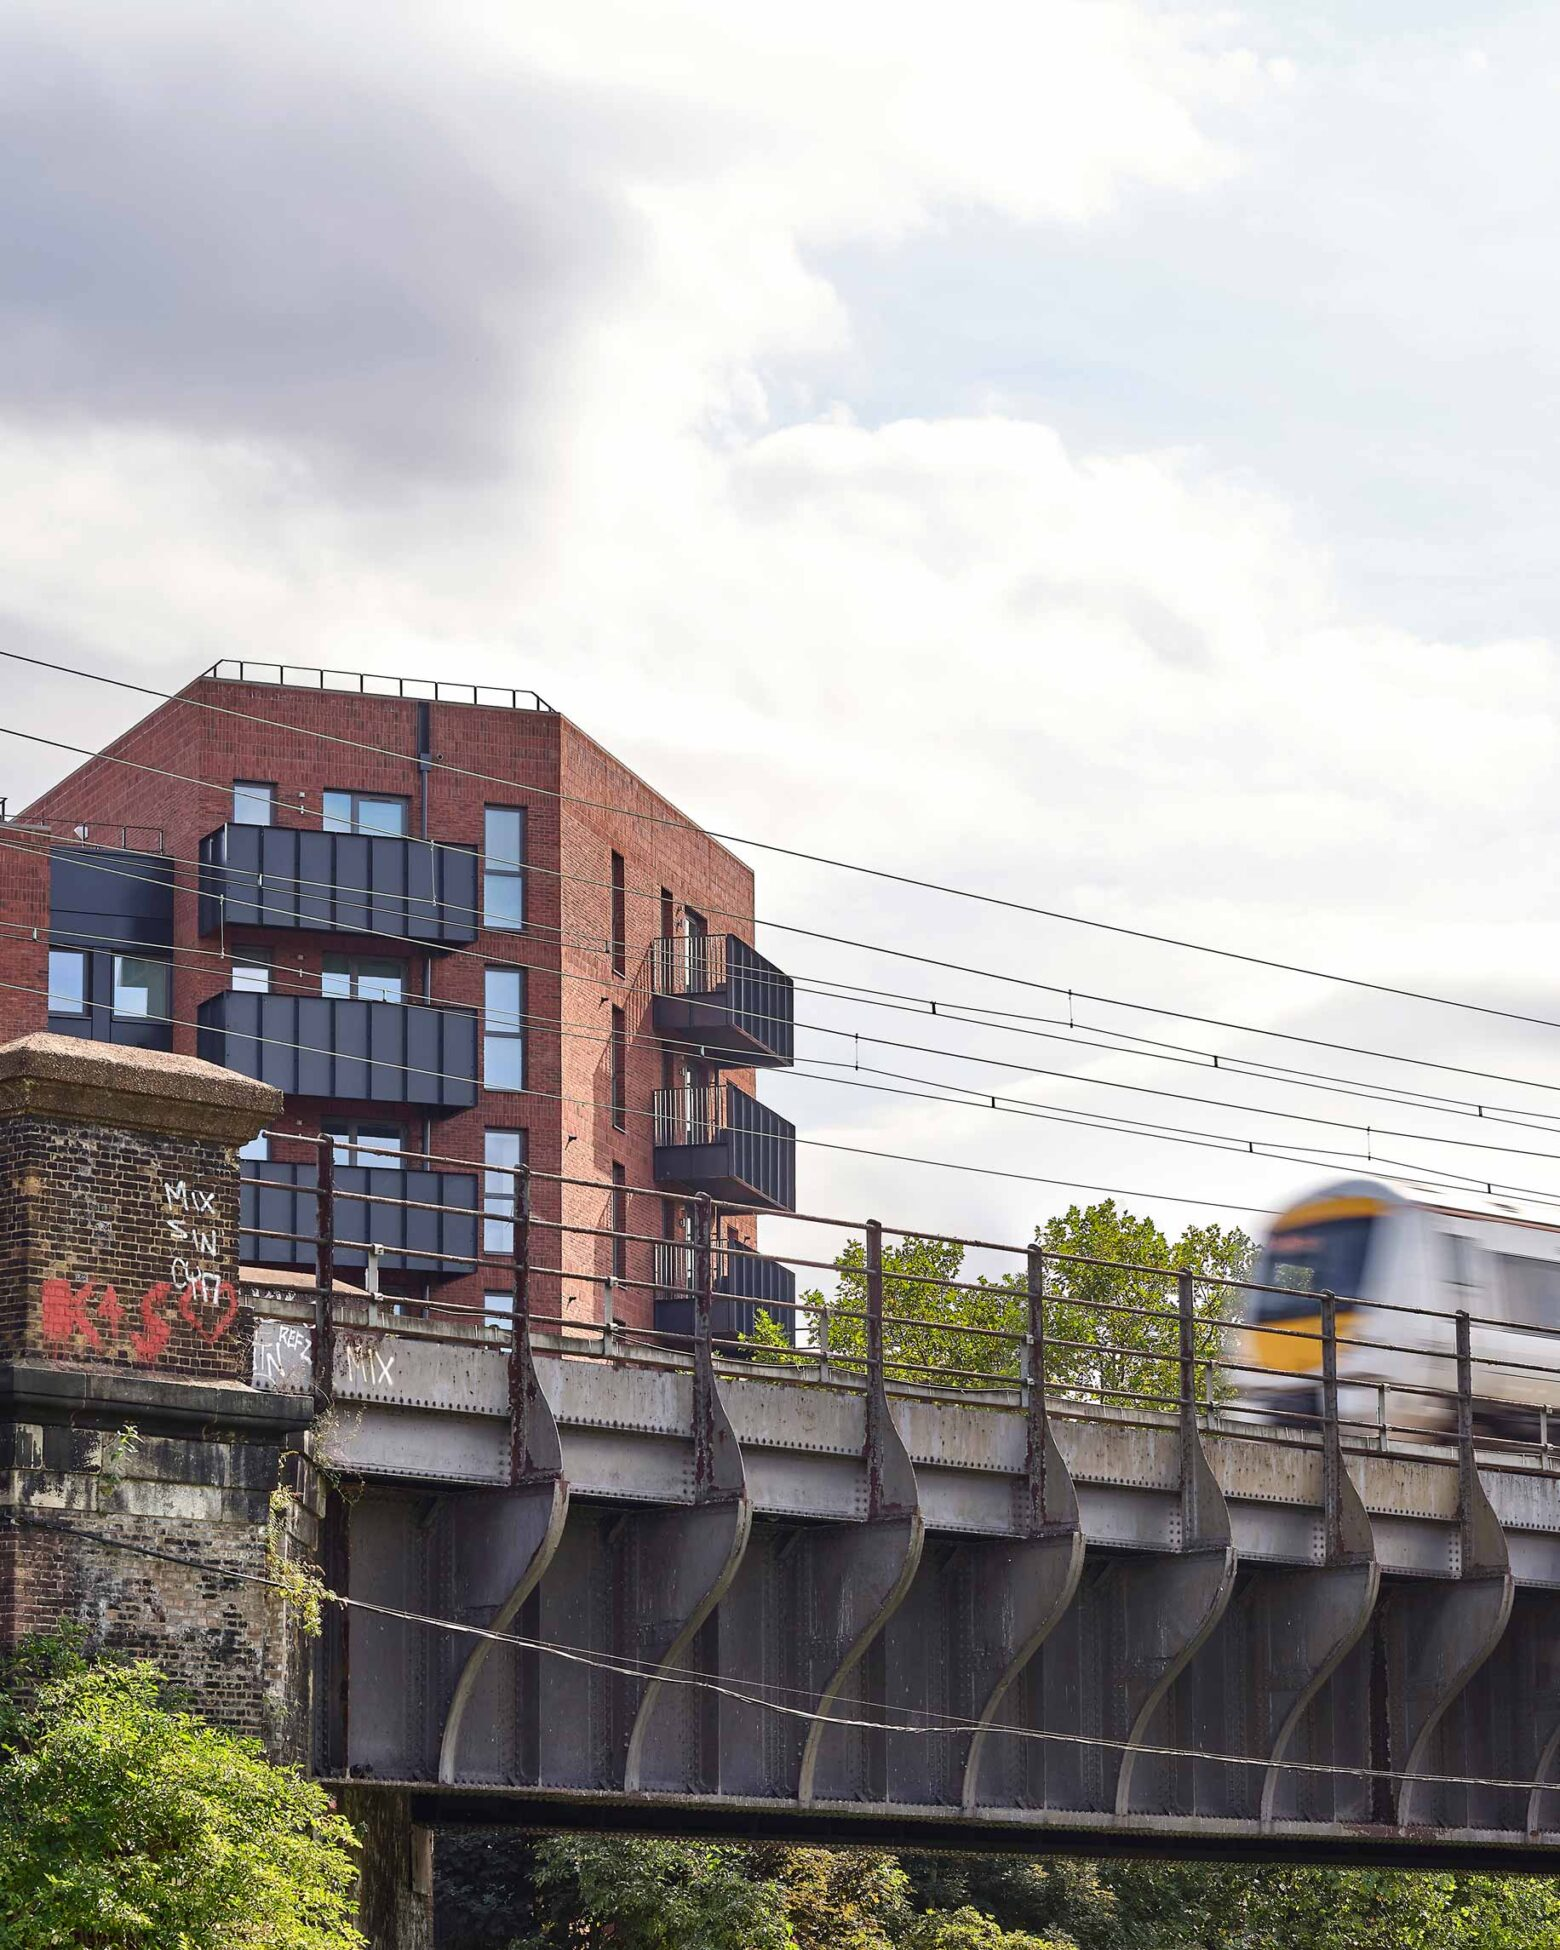 Second housing development completed for Tower Hamlets